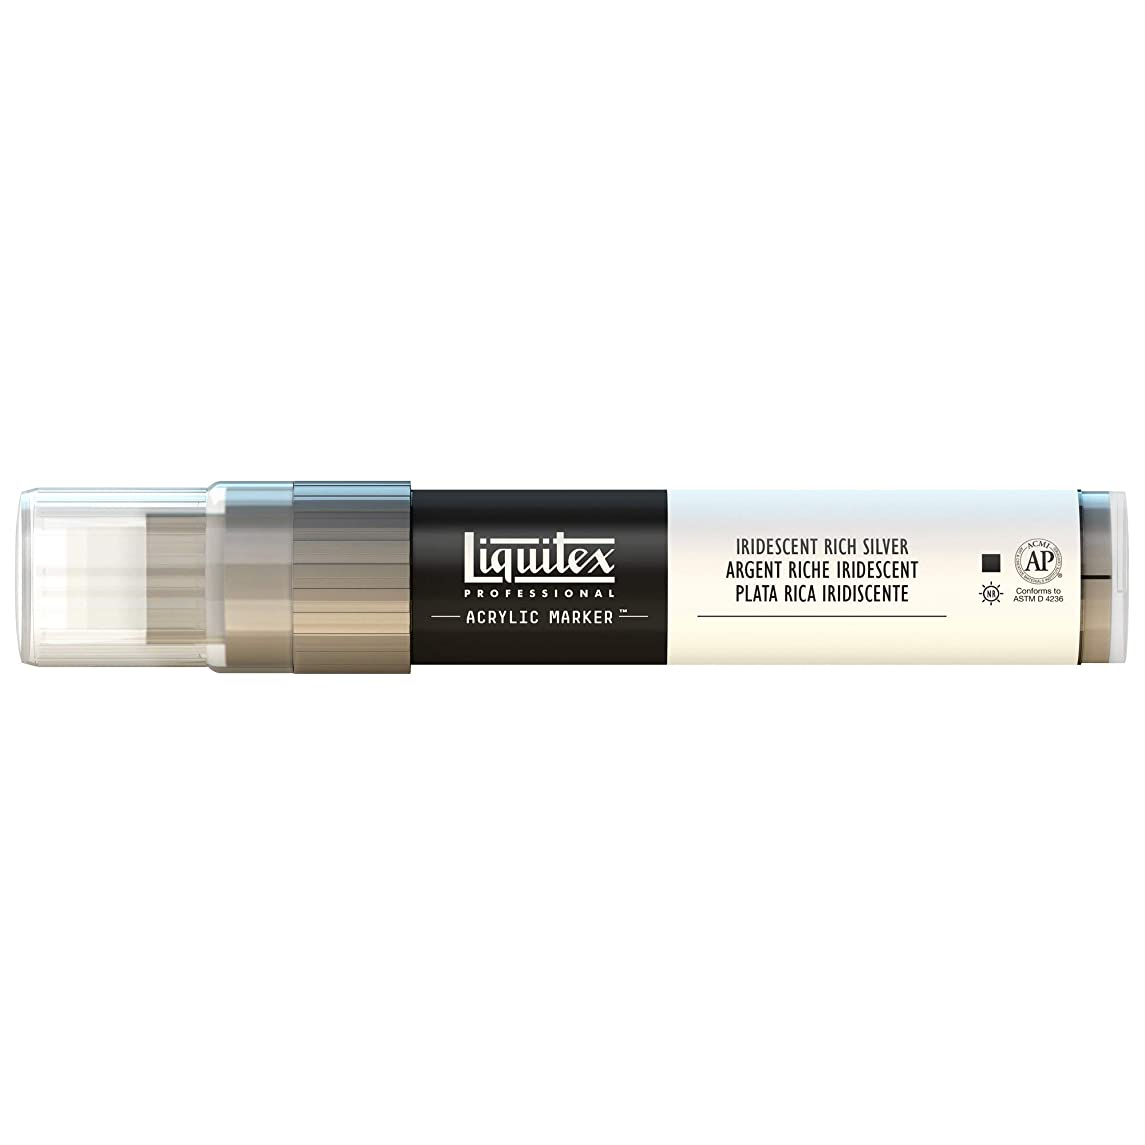 Liquitex Professional Wide Paint Marker, Iridescent Rich Silver